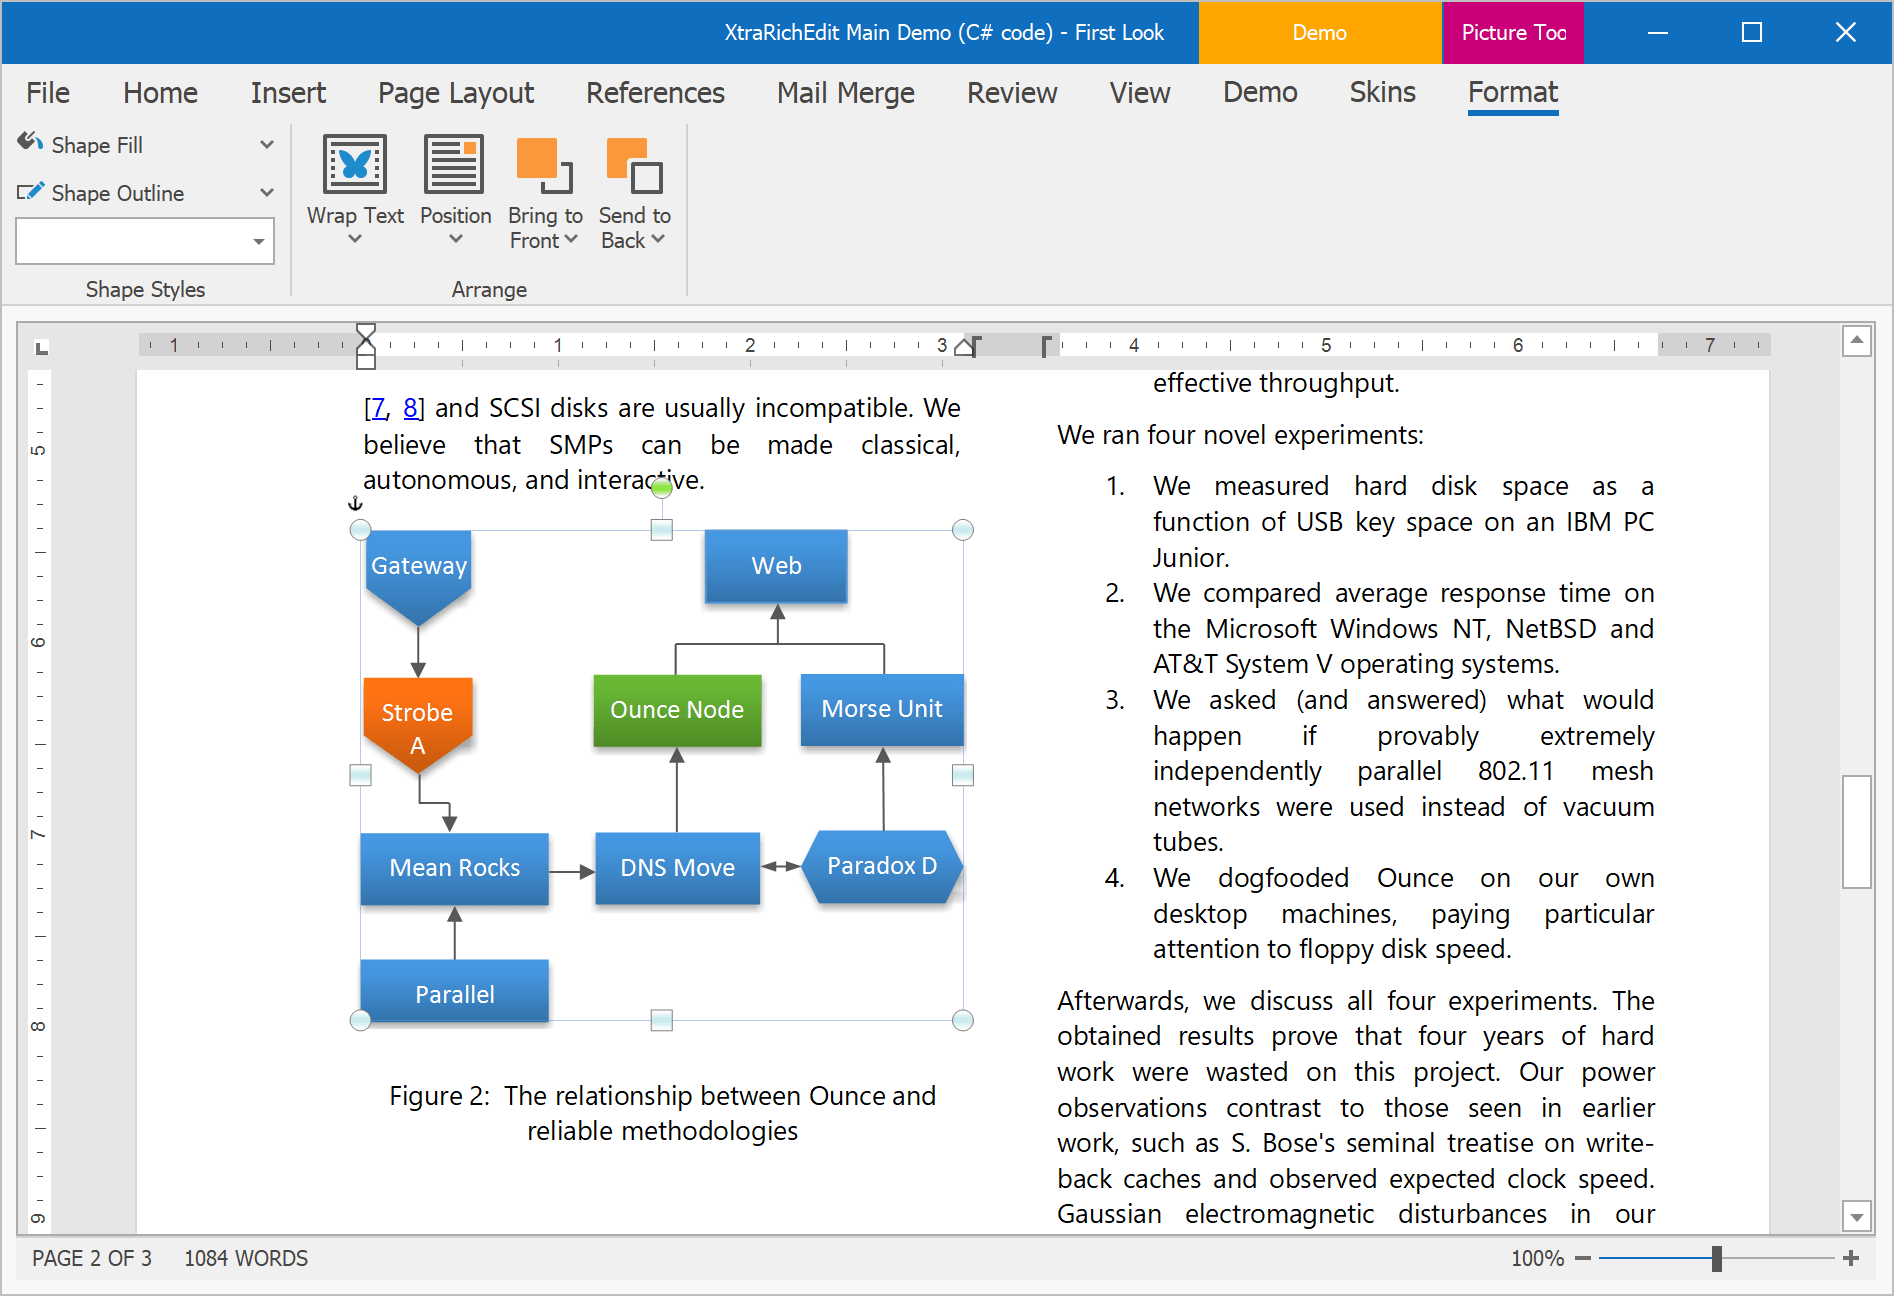 Shapes Support - WinForms Rich Text Editor, DevExpress